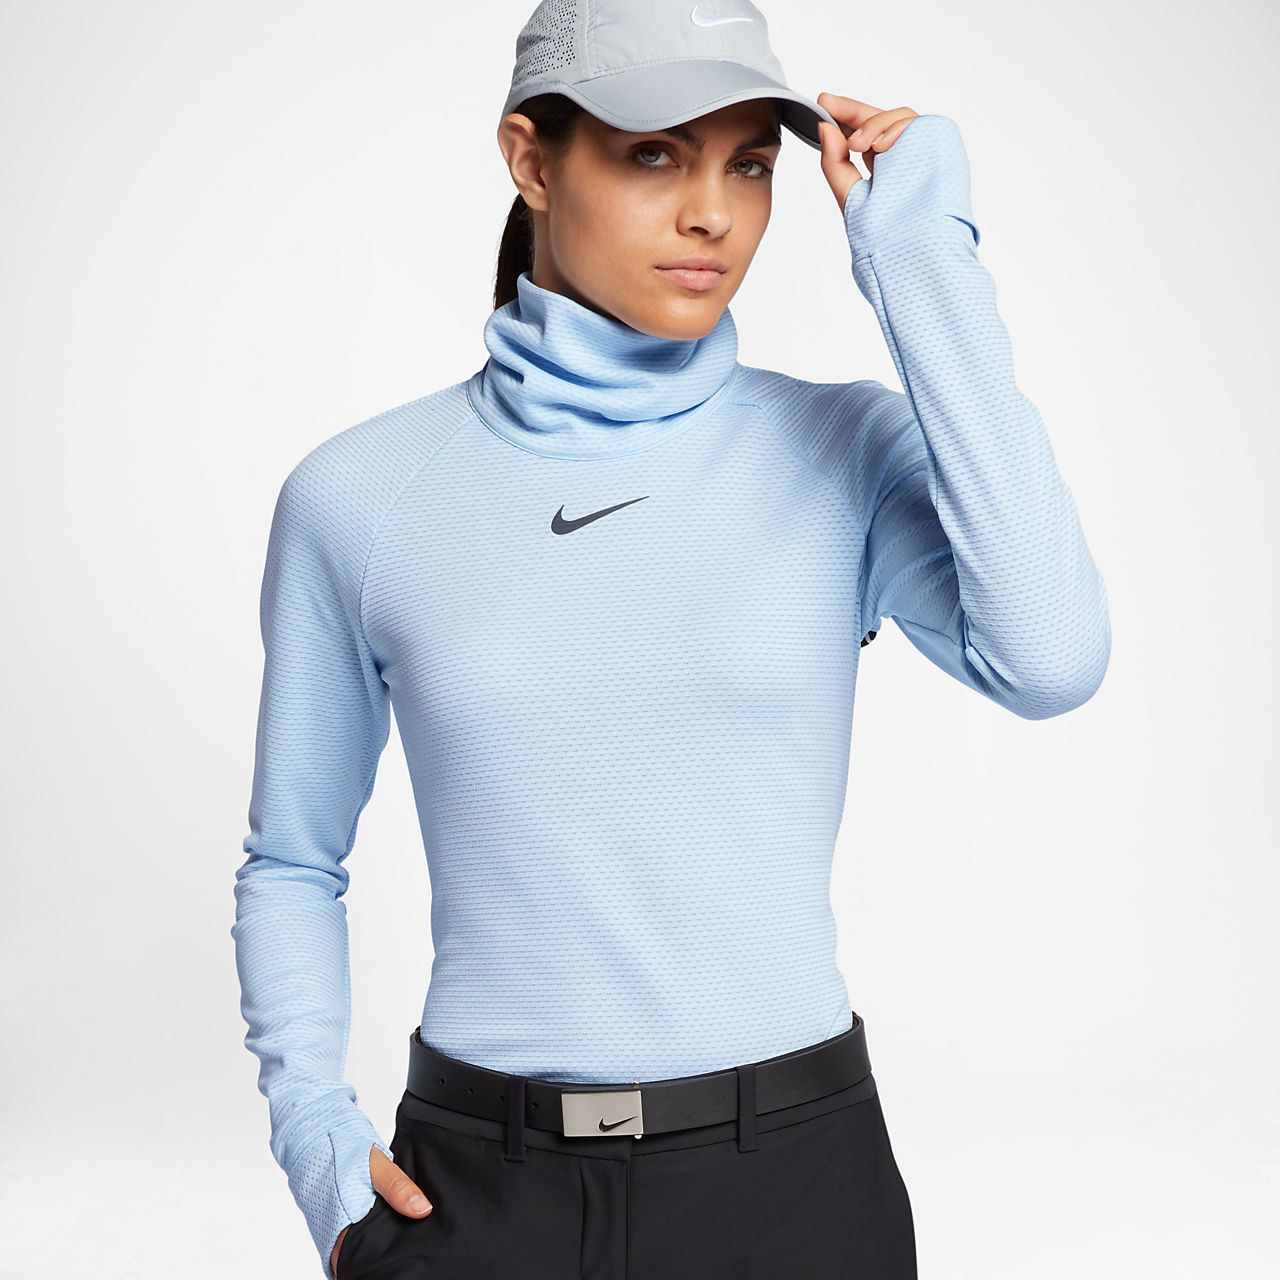 ... Nike AeroReact Warm Women's Long-Sleeve Golf Top